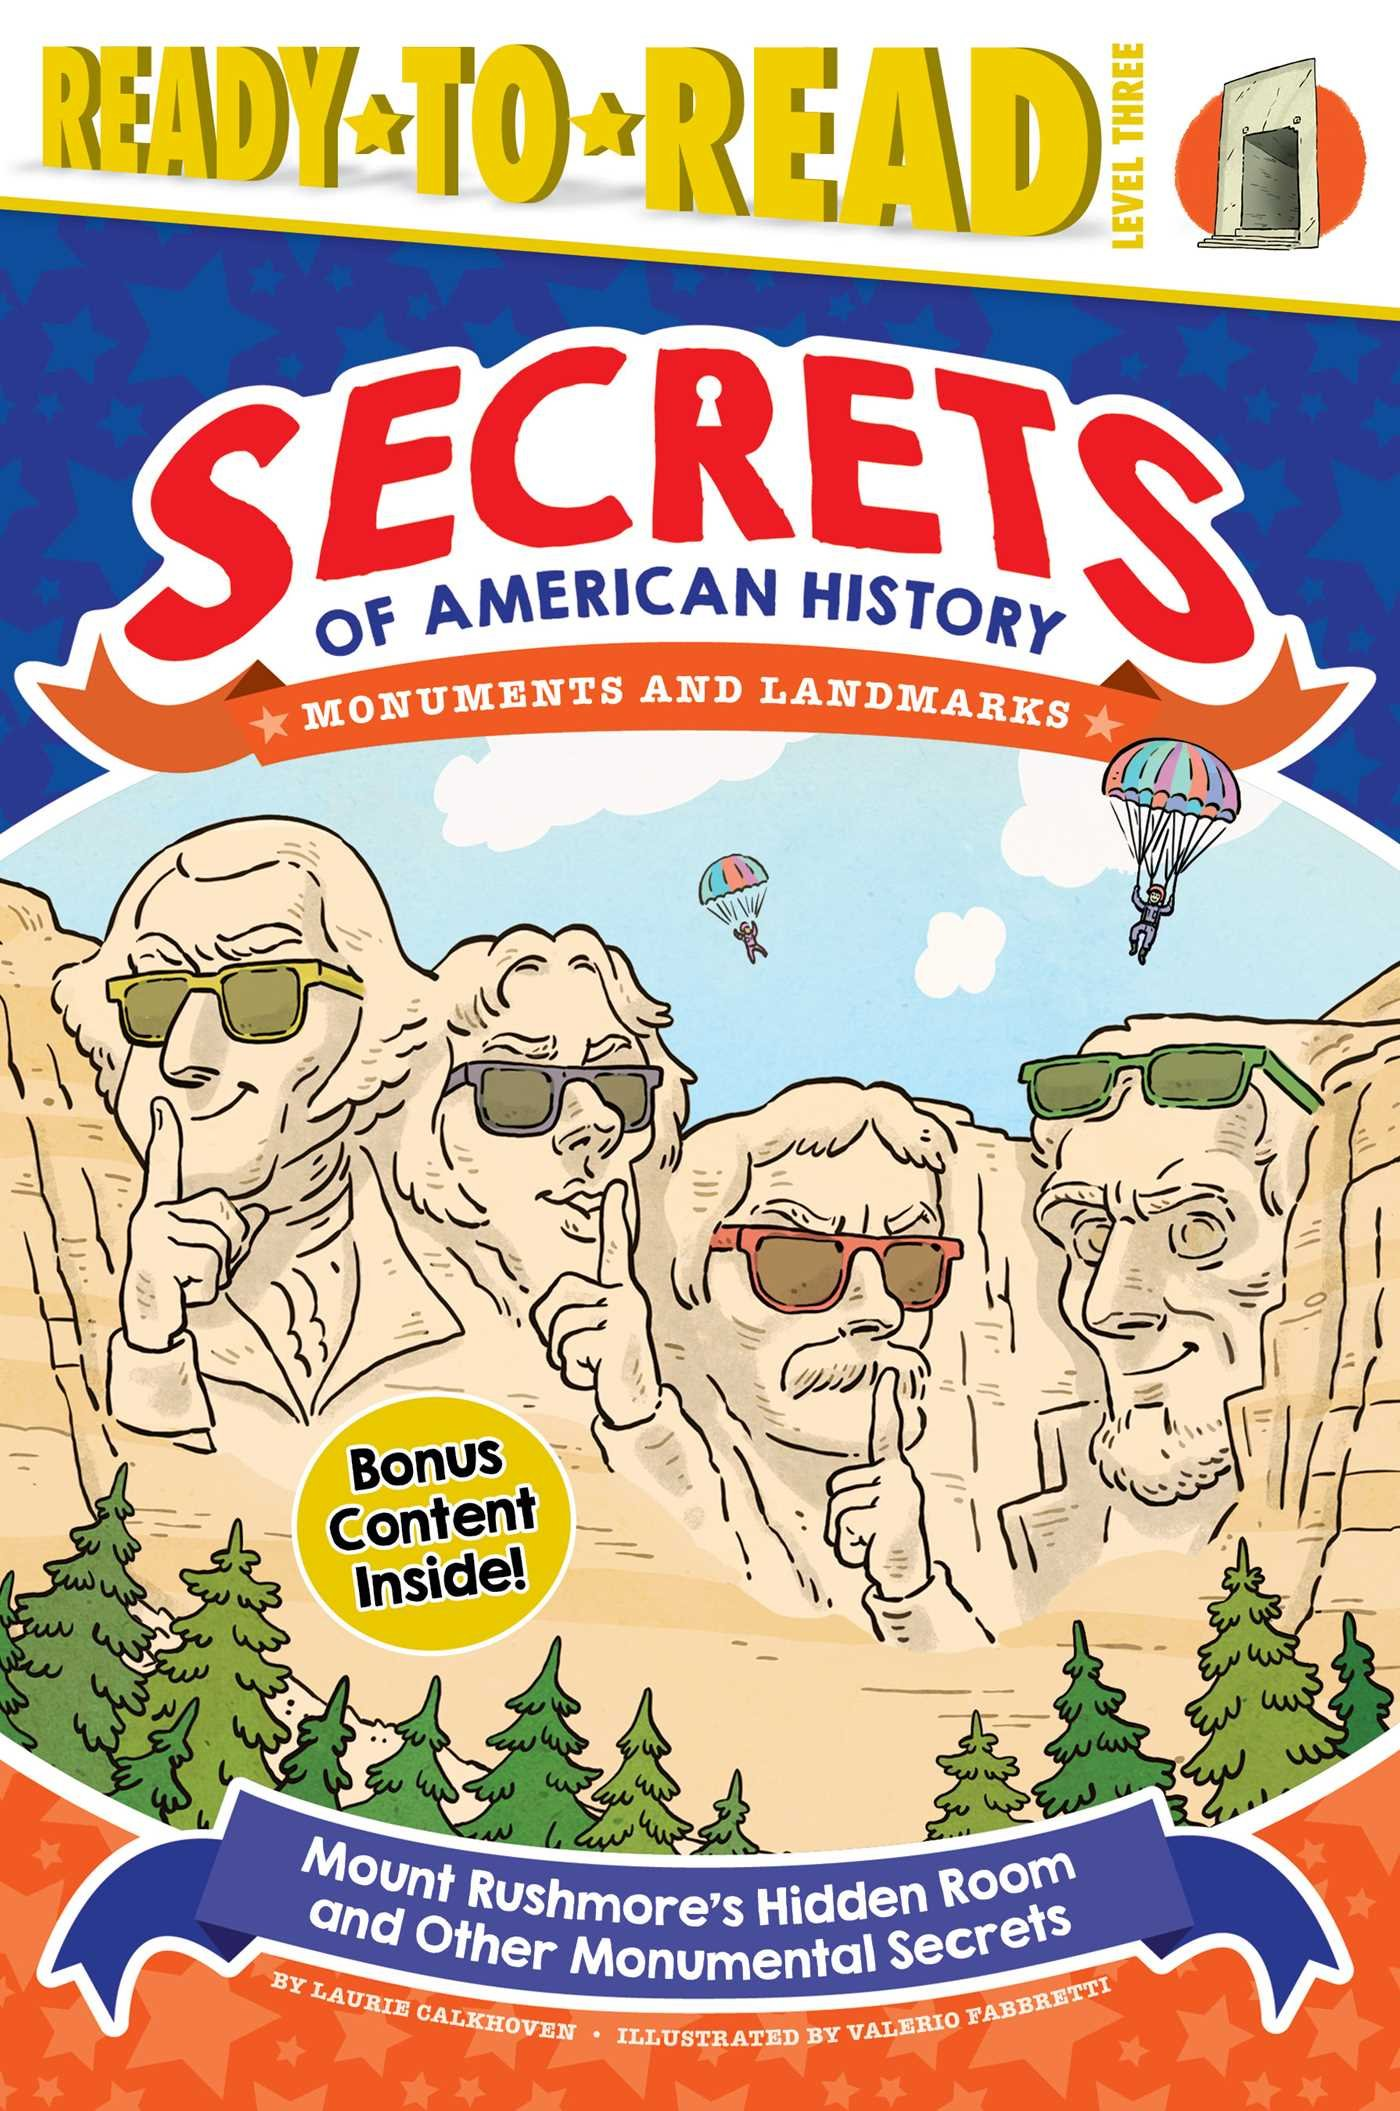 Amazon.com: Mount Rushmore's Hidden Room and Other Monumental Secrets: Monuments and Landmarks (Secrets of American History) (9781534429246): Calkhoven, Laurie, Fabbretti, Valerio: Books